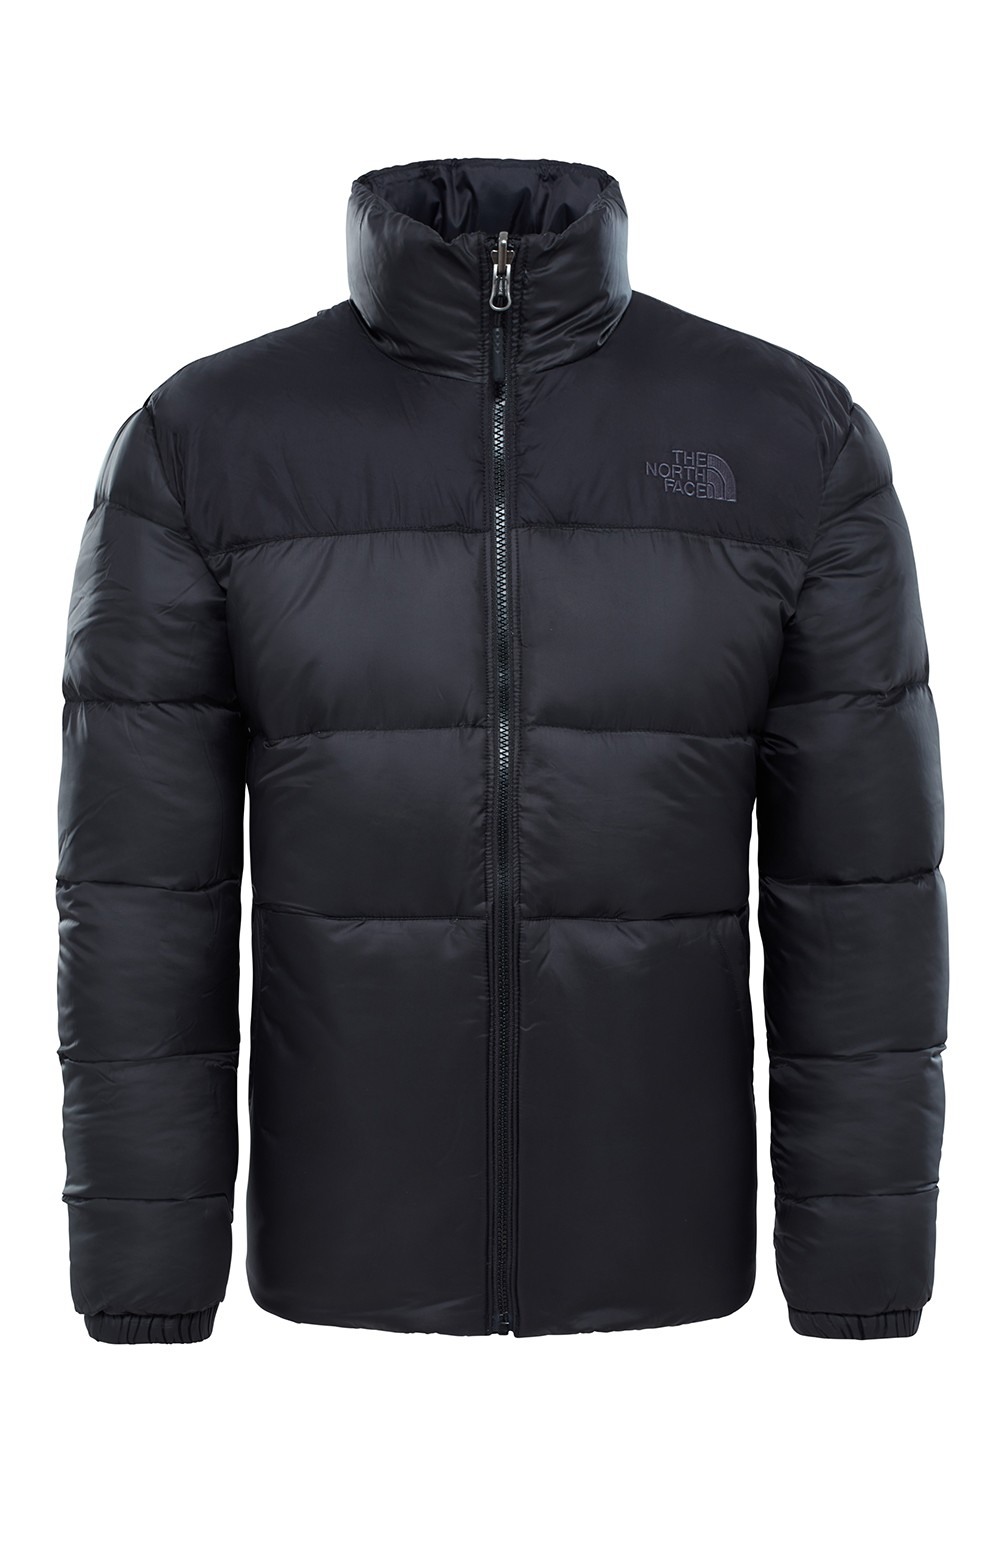 eef7e786c7 The North Face Mens Nuptse III Down Jacket - House of Bruar